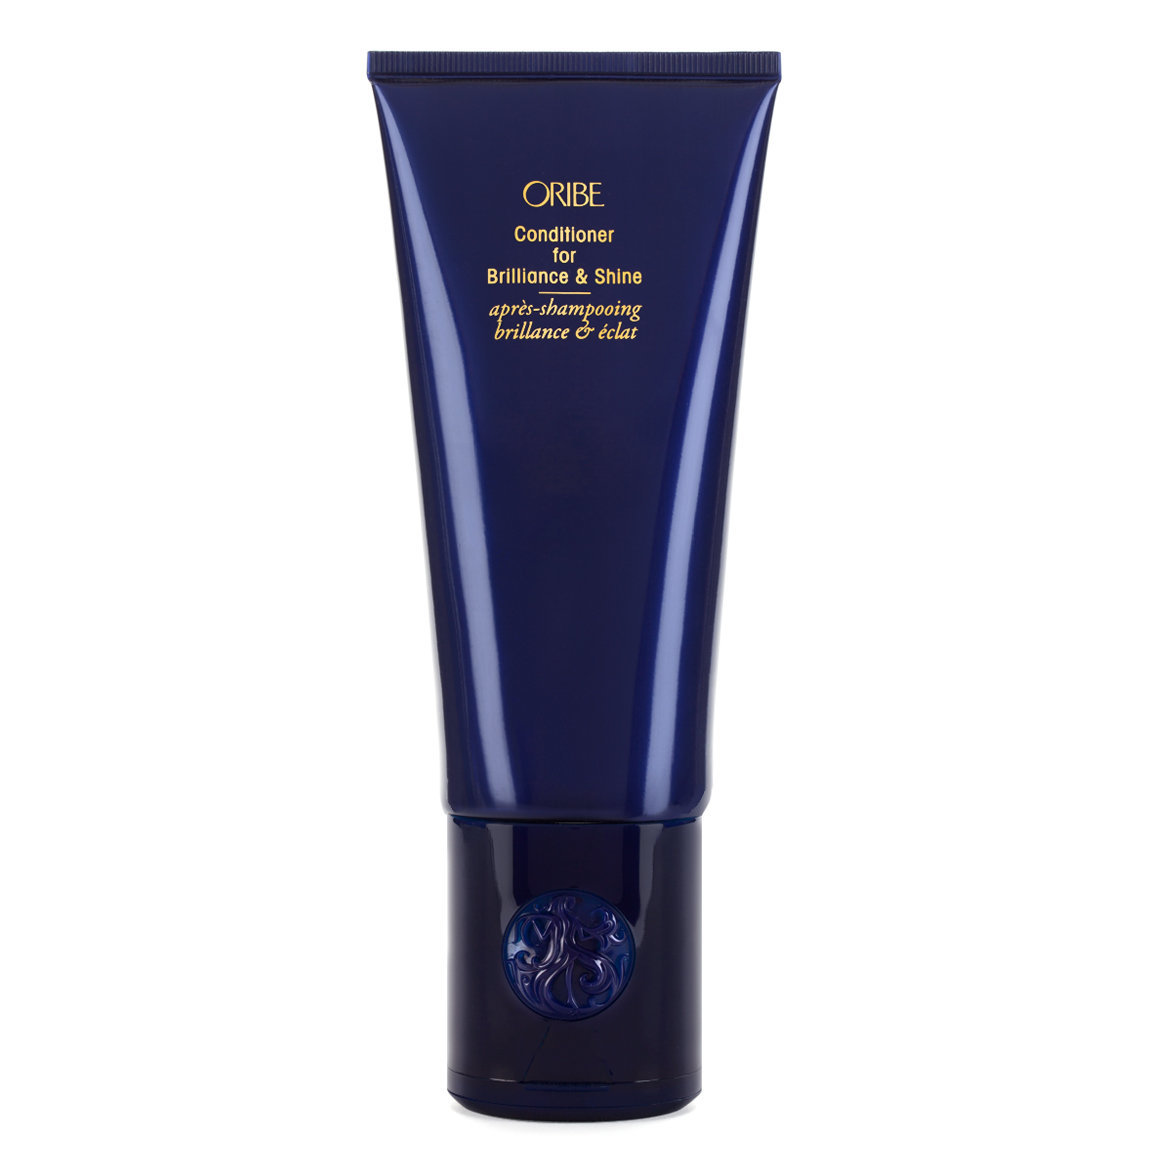 Oribe Conditioner for Brilliance & Shine product smear.